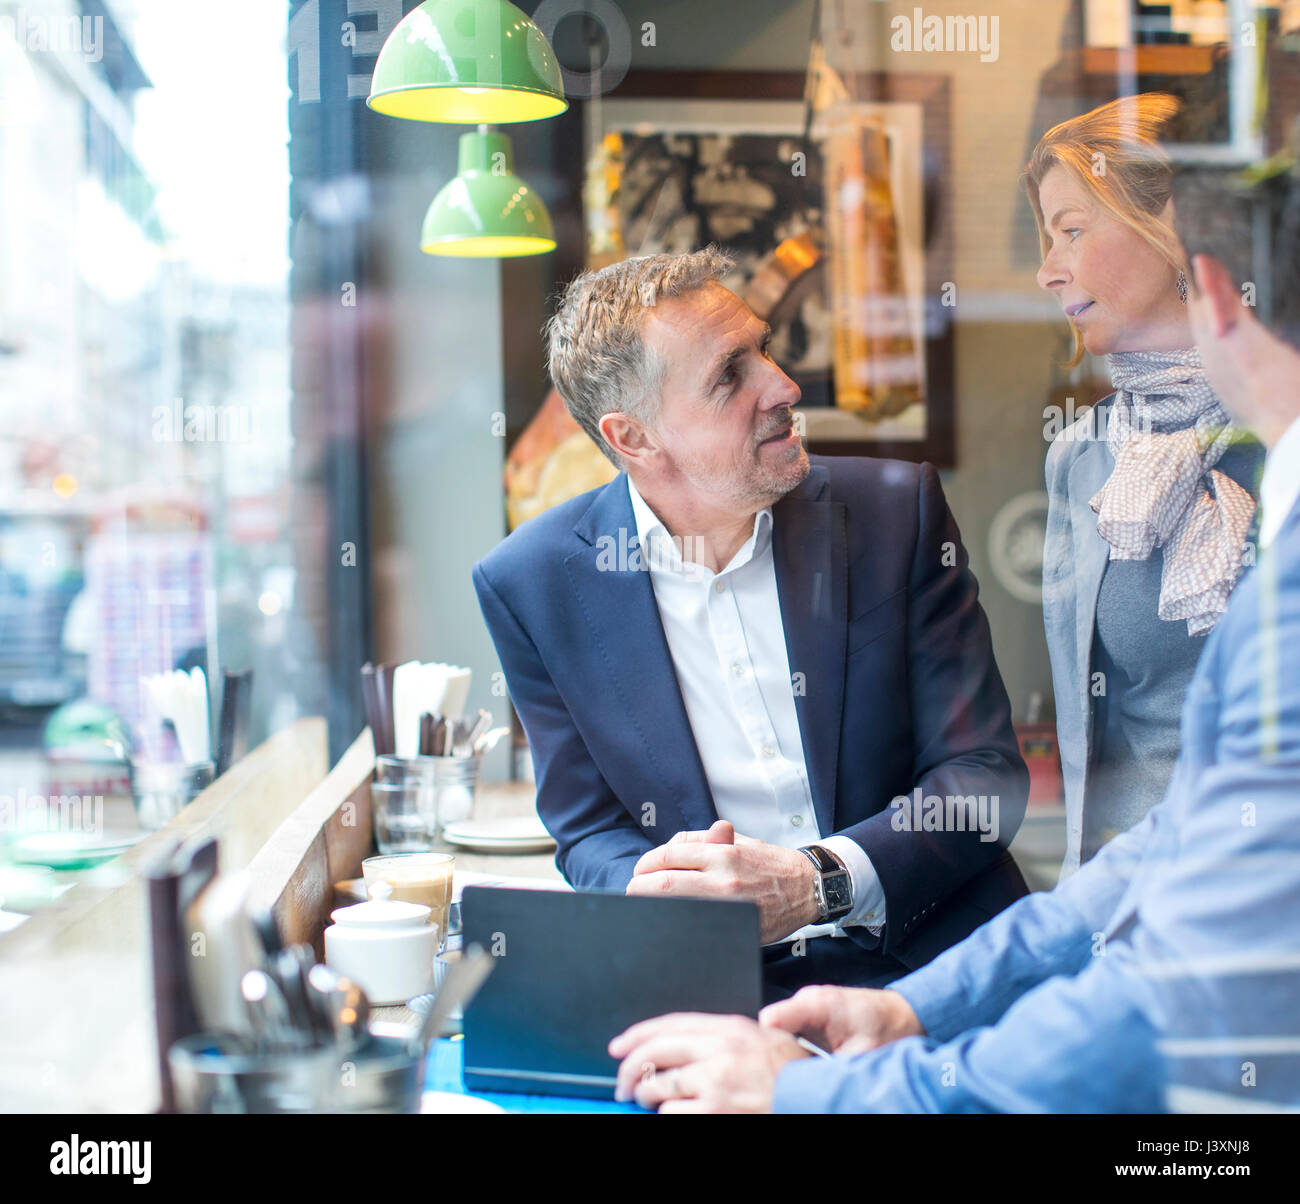 Businessmen and woman having working lunch in restaurant - Stock Image